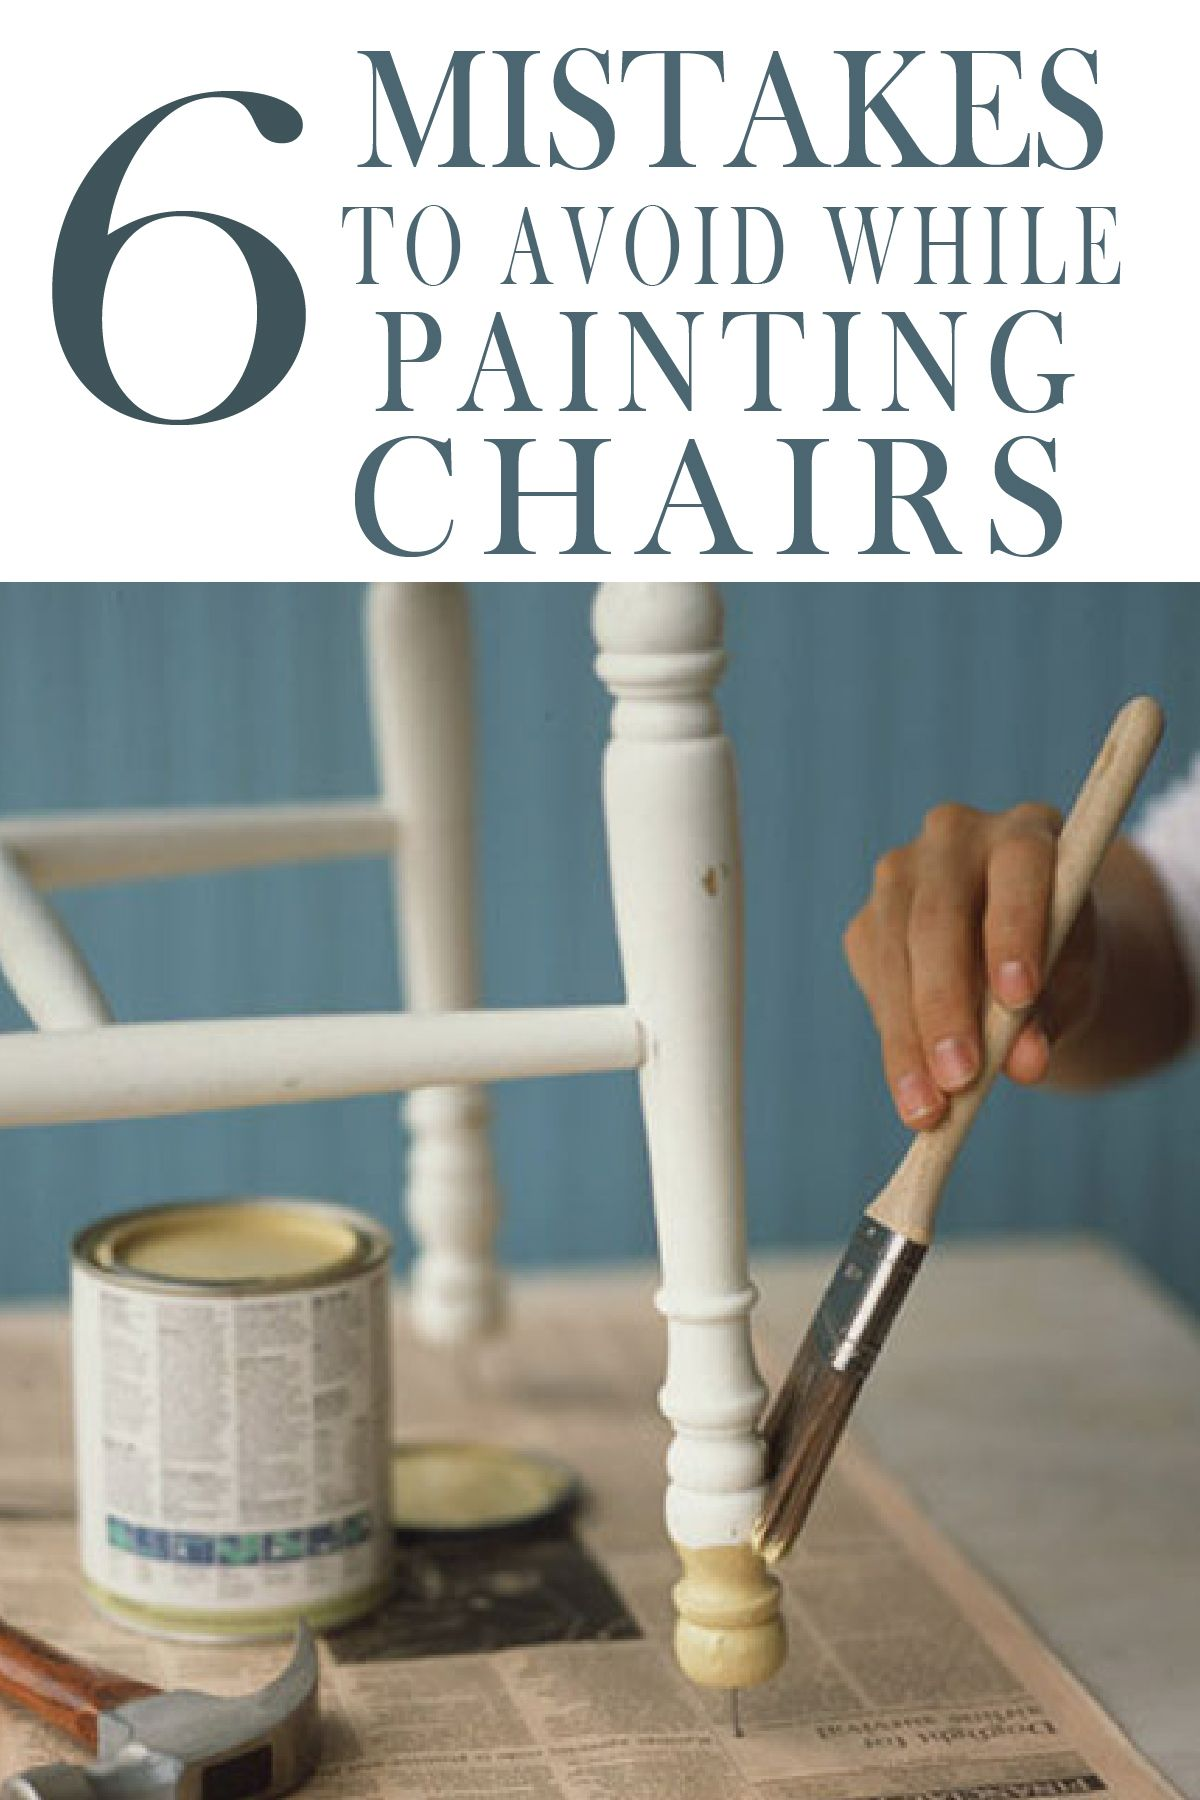 7 Mistakes People Make Painting Kitchen Chairs  Painted Furniture Ideas is part of Painted kitchen tables - Painting kitchen chairs is like riding a roller coaster  Learn for others mistakes before you start your diy project, and get beautiful results!